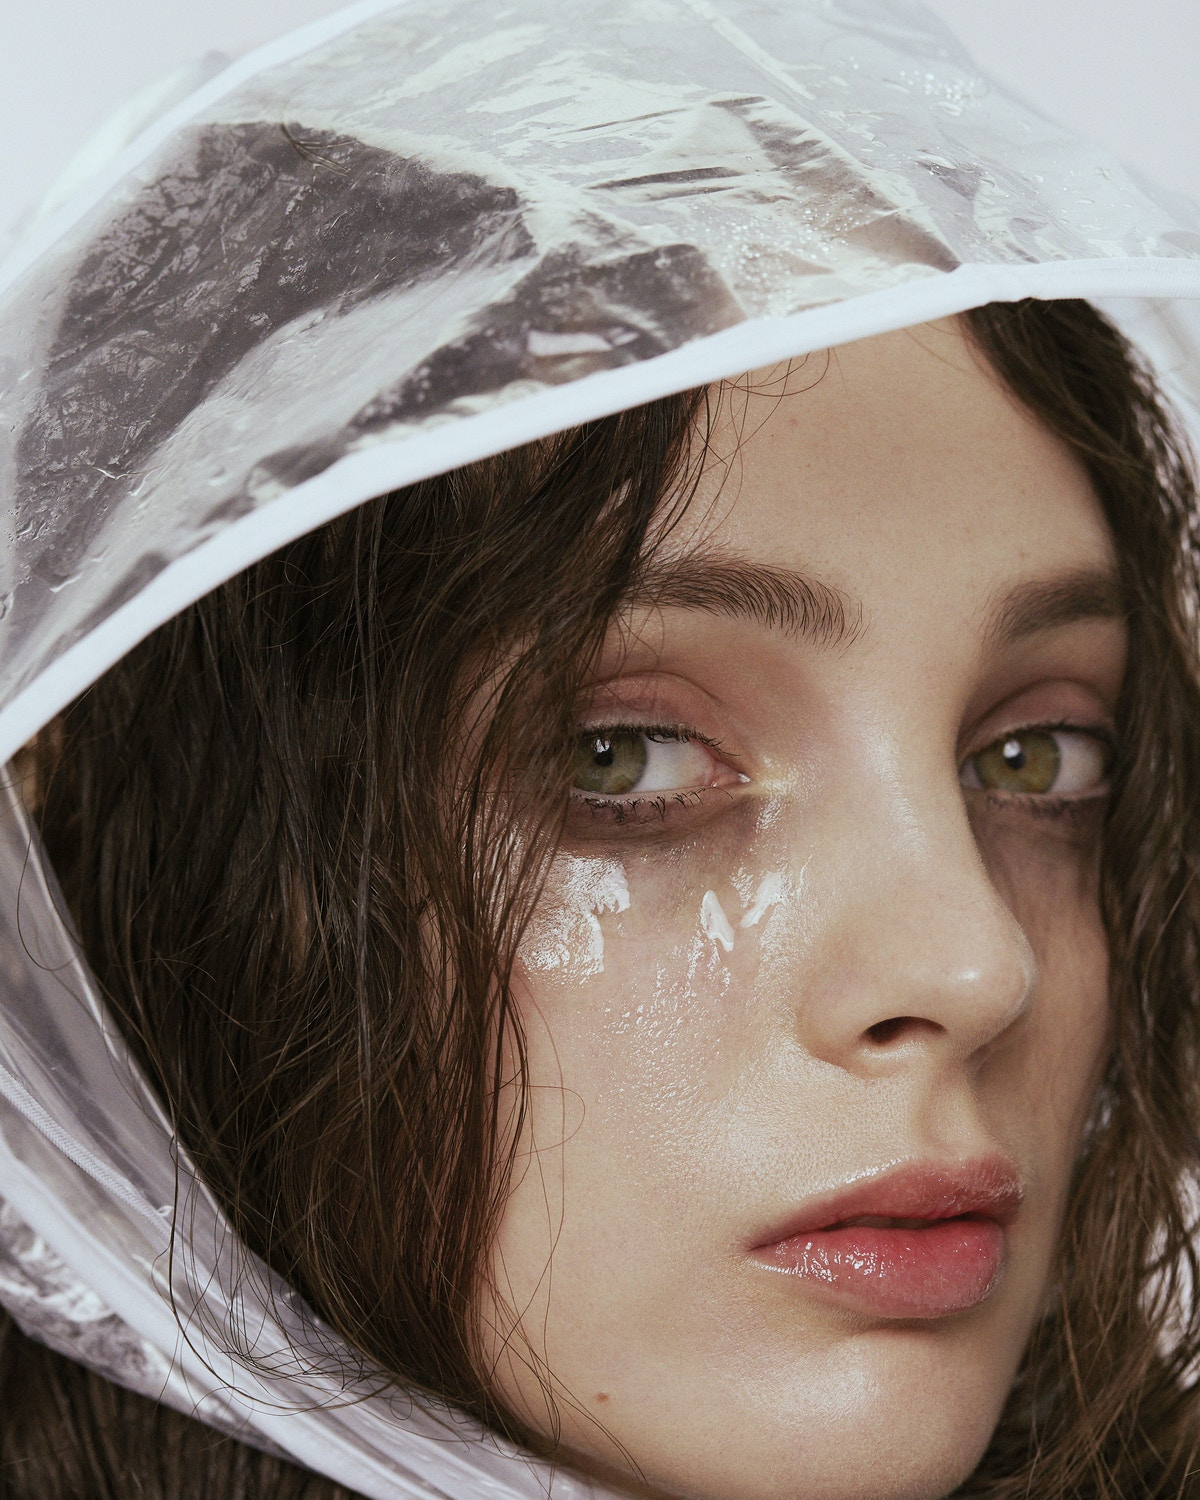 A woman wearing a clear plastic rain hood. Her eyes look watery